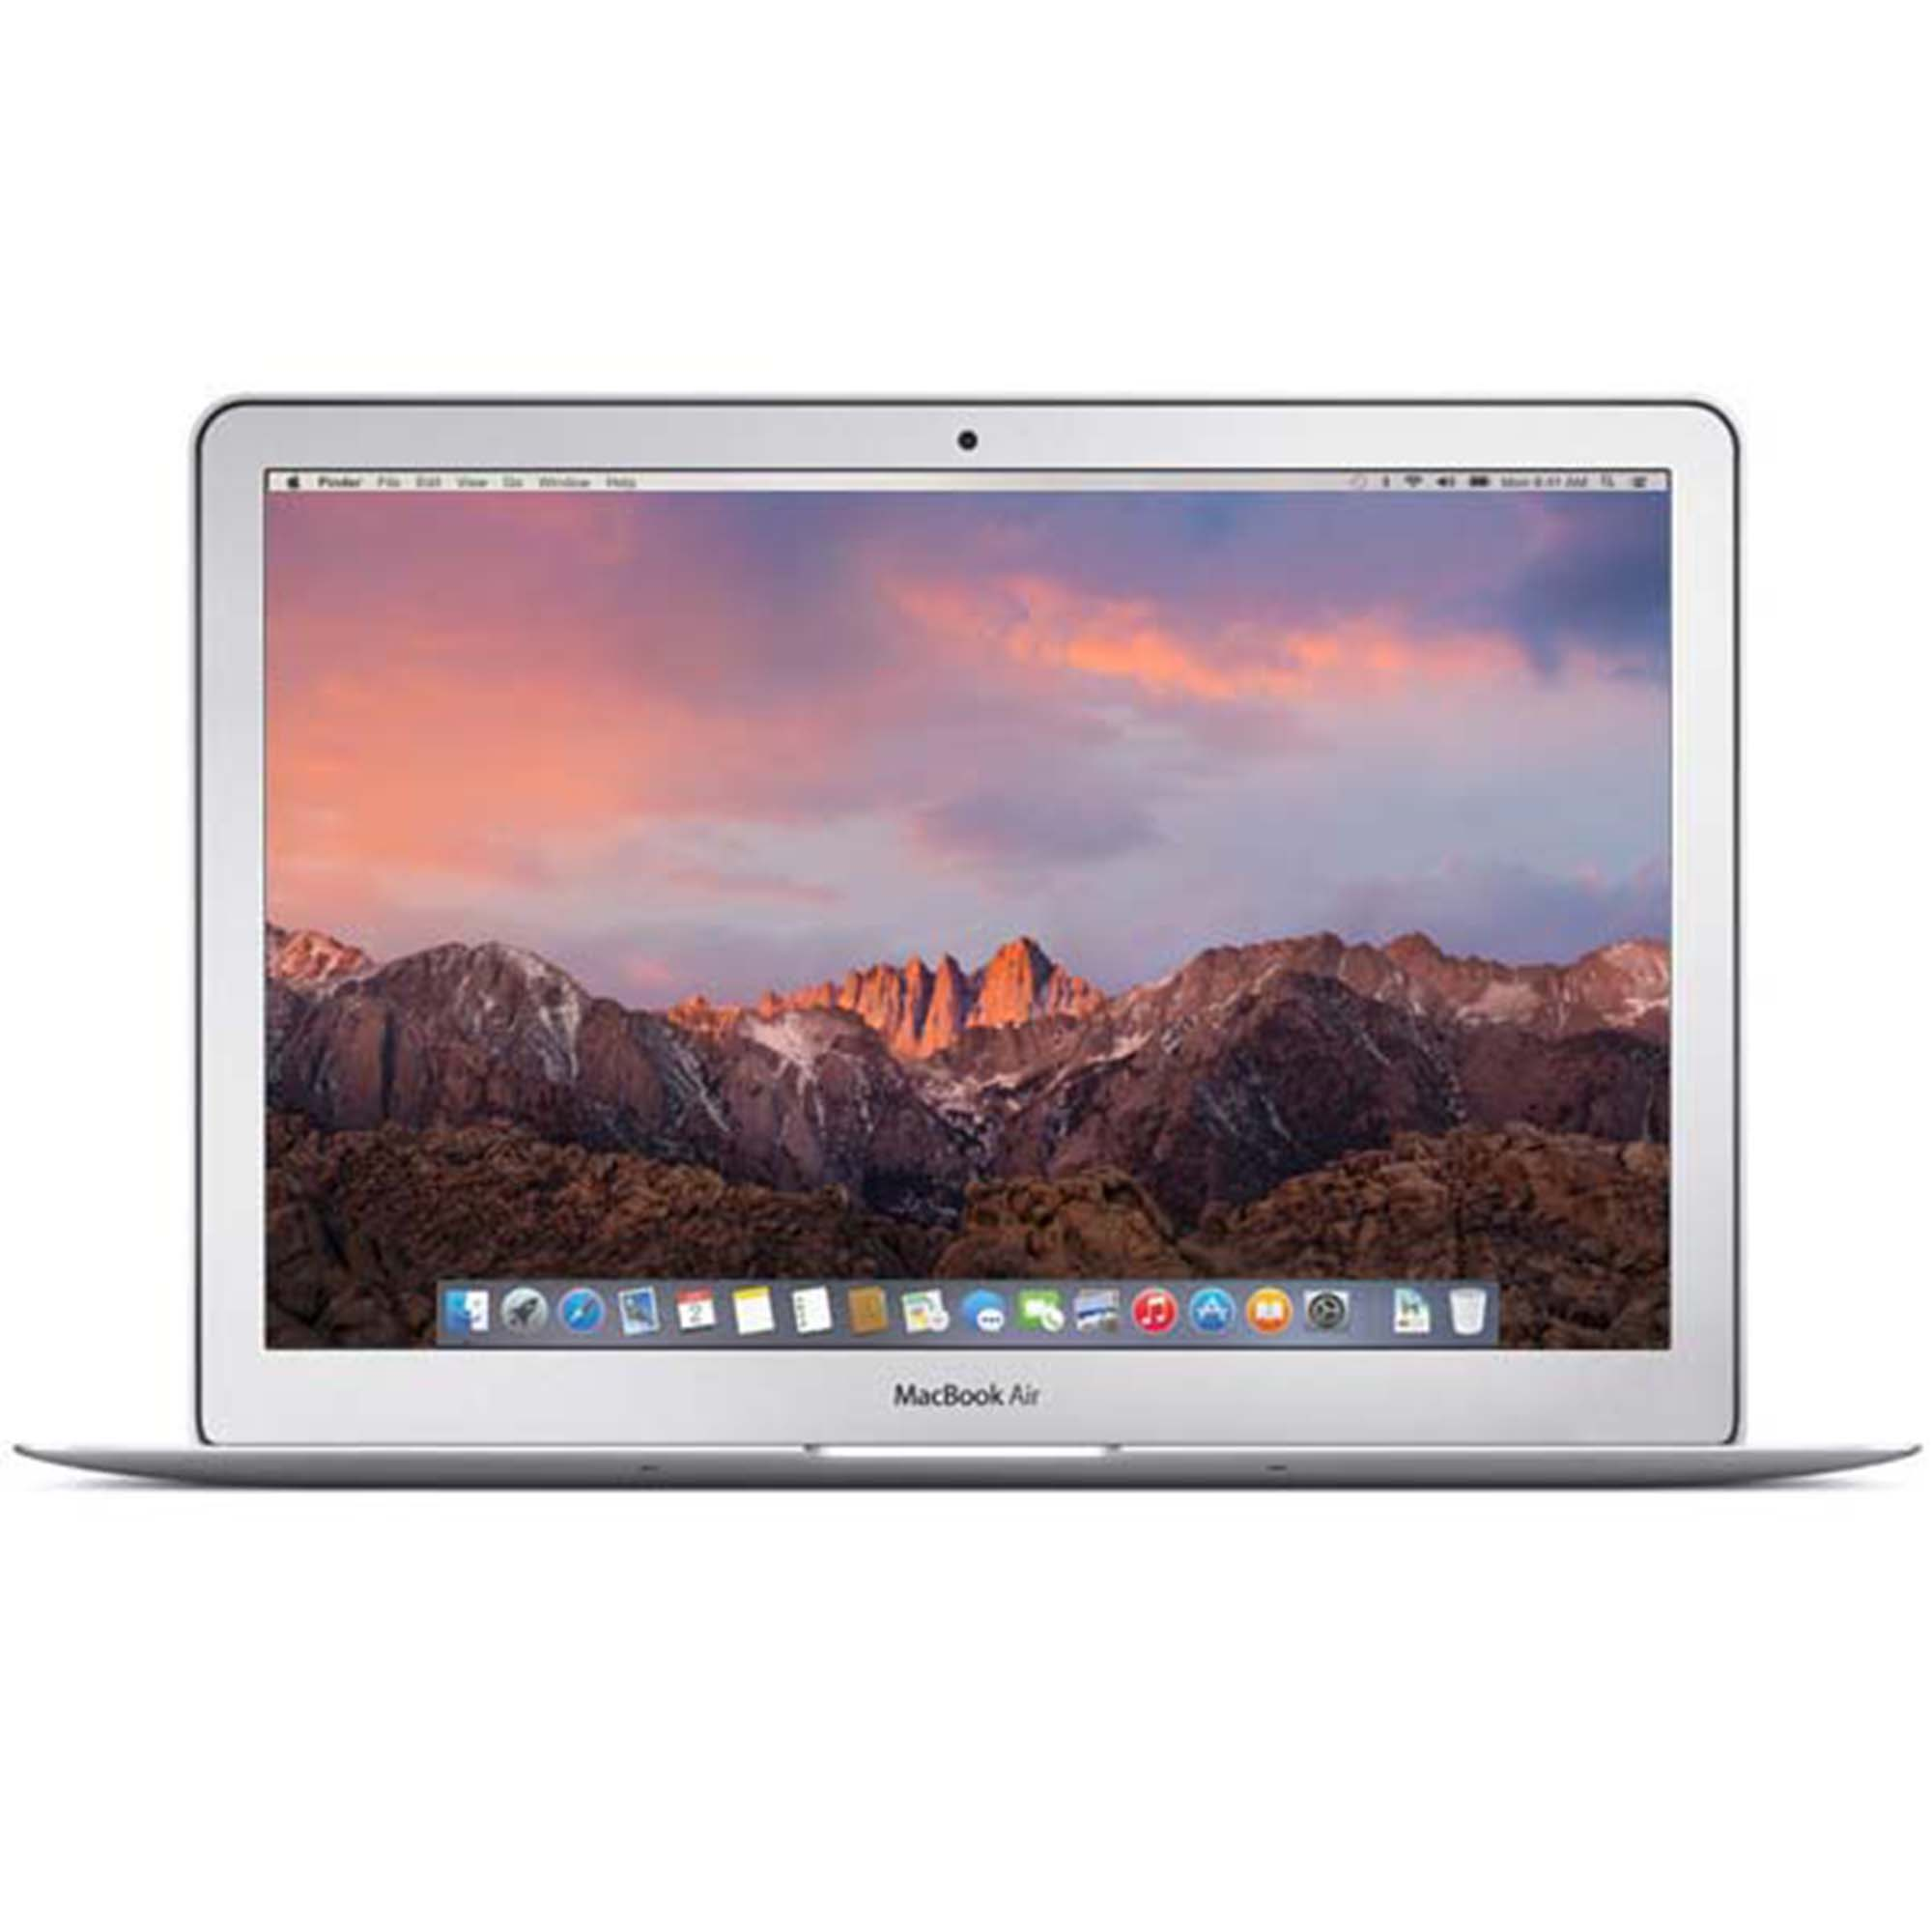 "Apple MacBook Air 13"" Laptop Intel Dual Core i5 1.4GHz (MD761LL B) 4GB Memory   256GB Solid State Drive... by Apple"